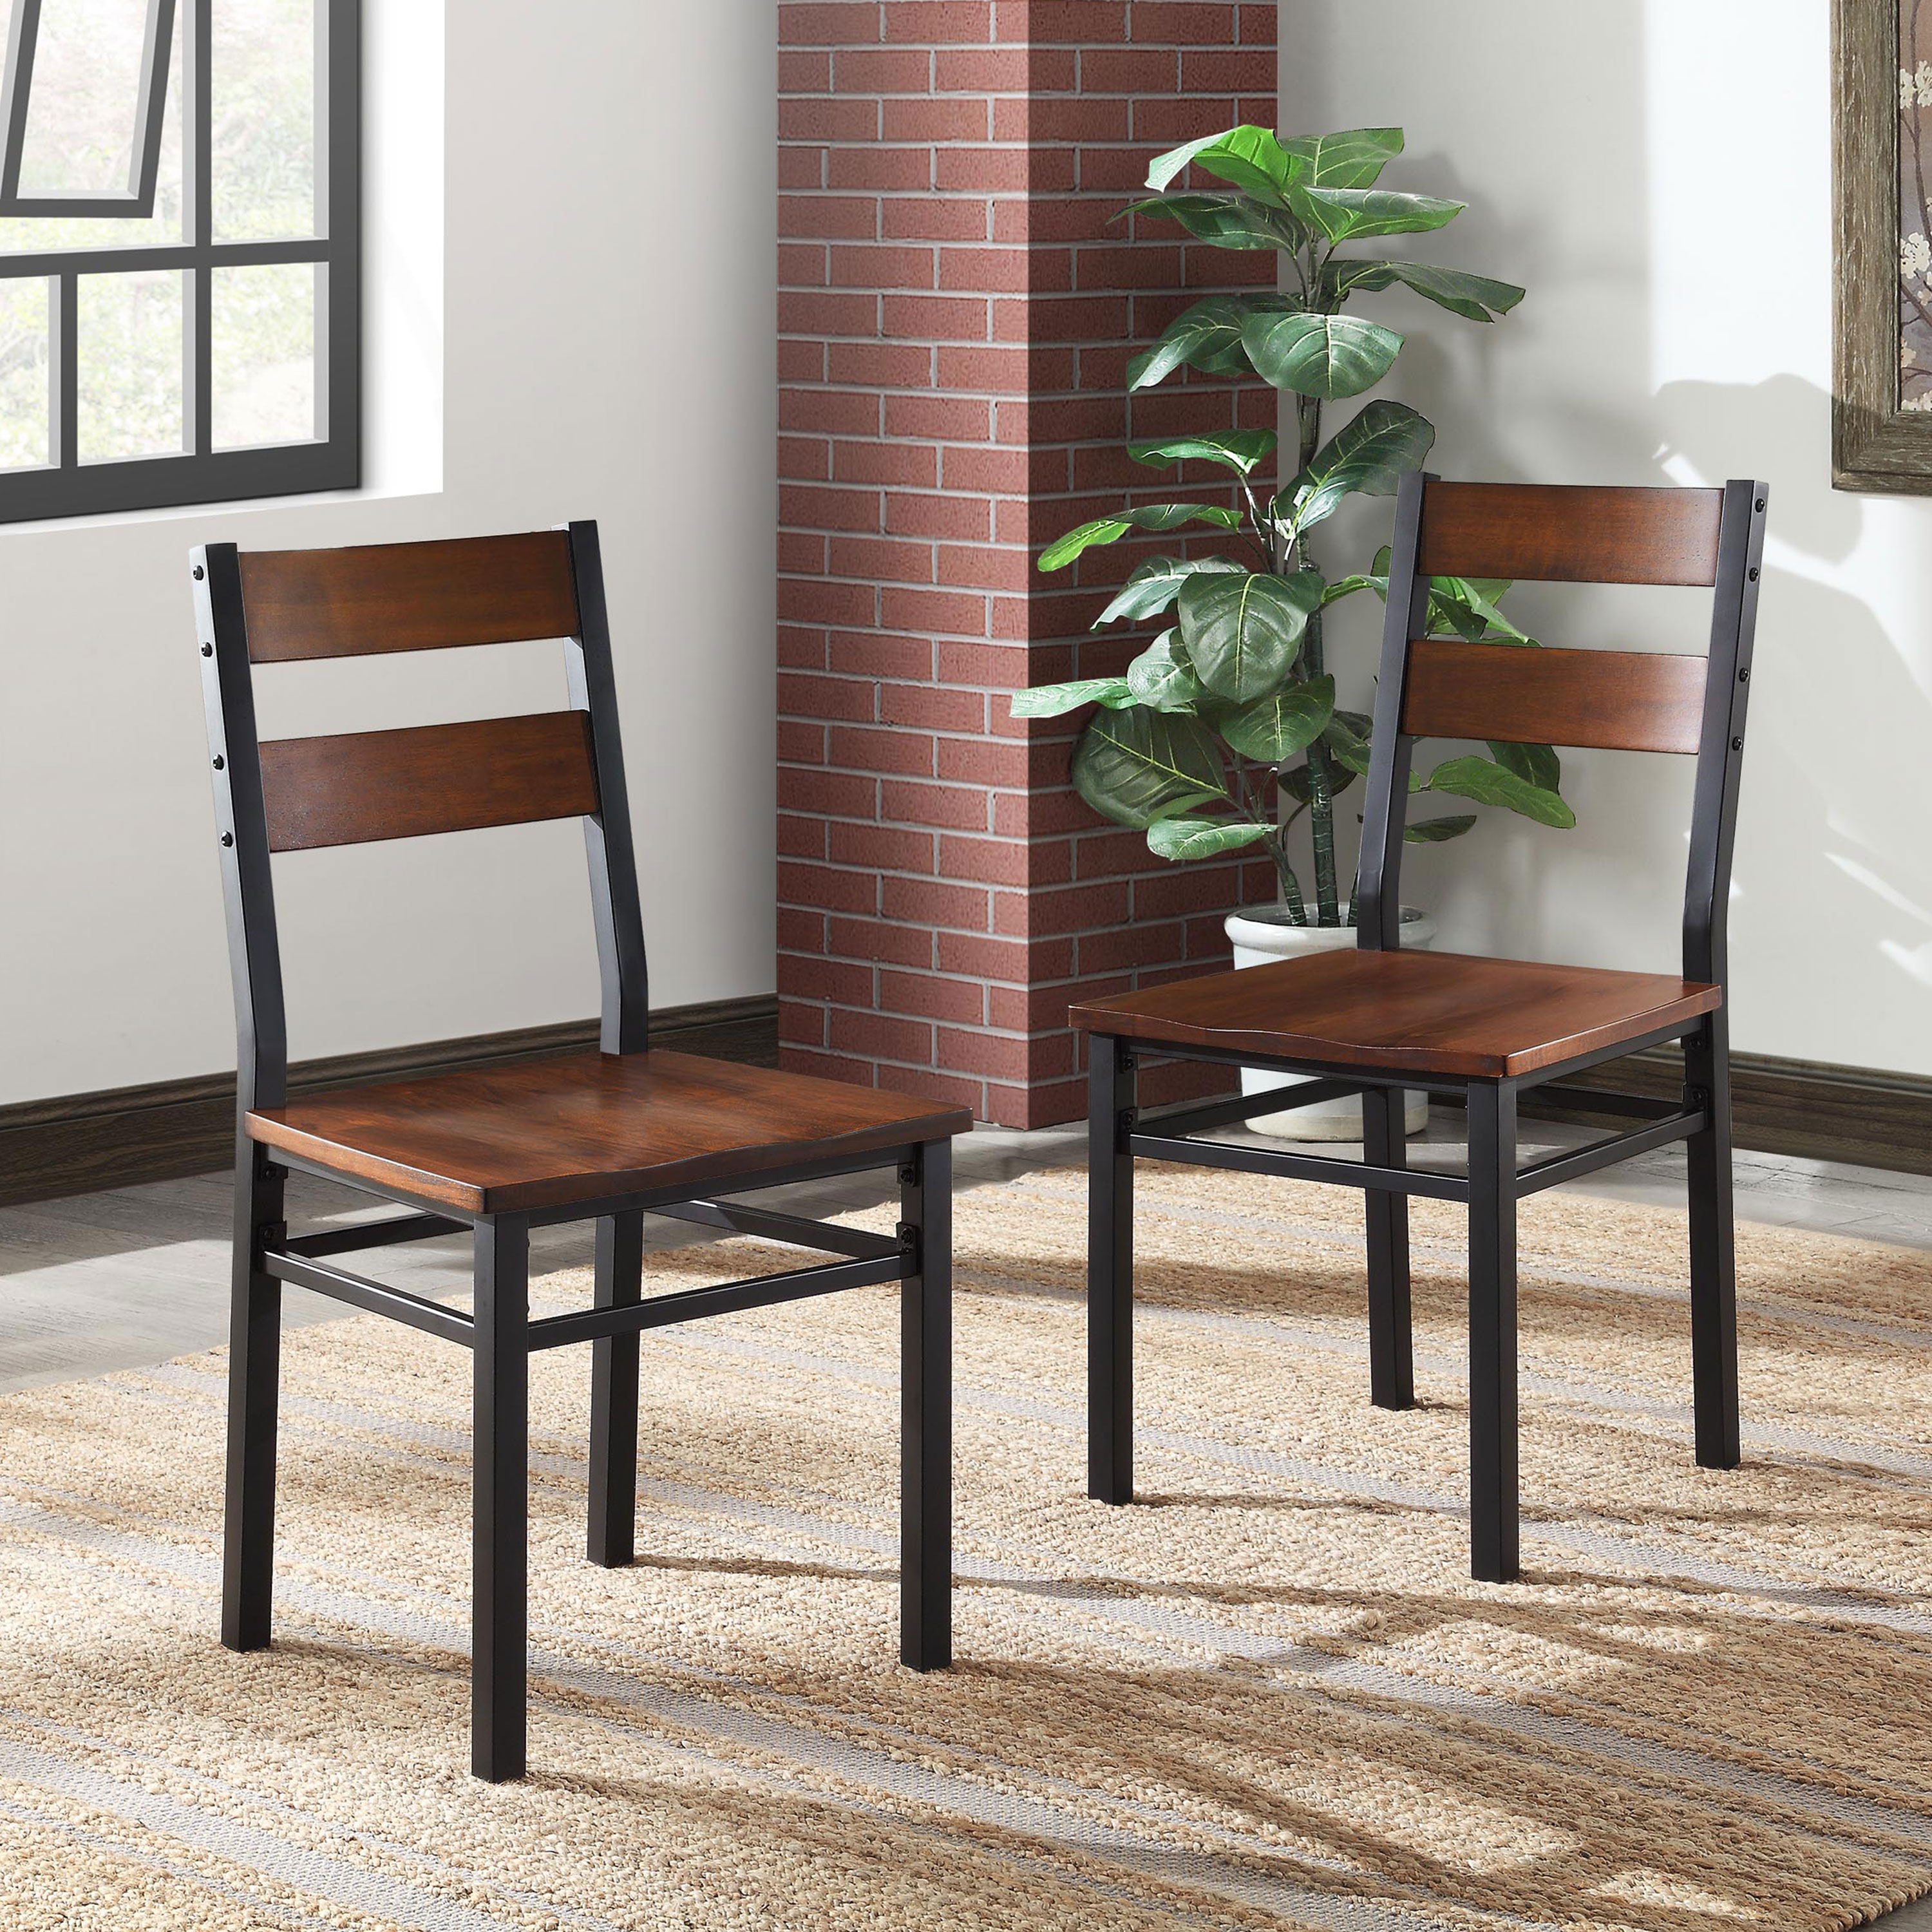 2017 Kitchen & Dining Furniture – Walmart For Moorehead 3 Piece Counter Height Dining Sets (View 18 of 20)